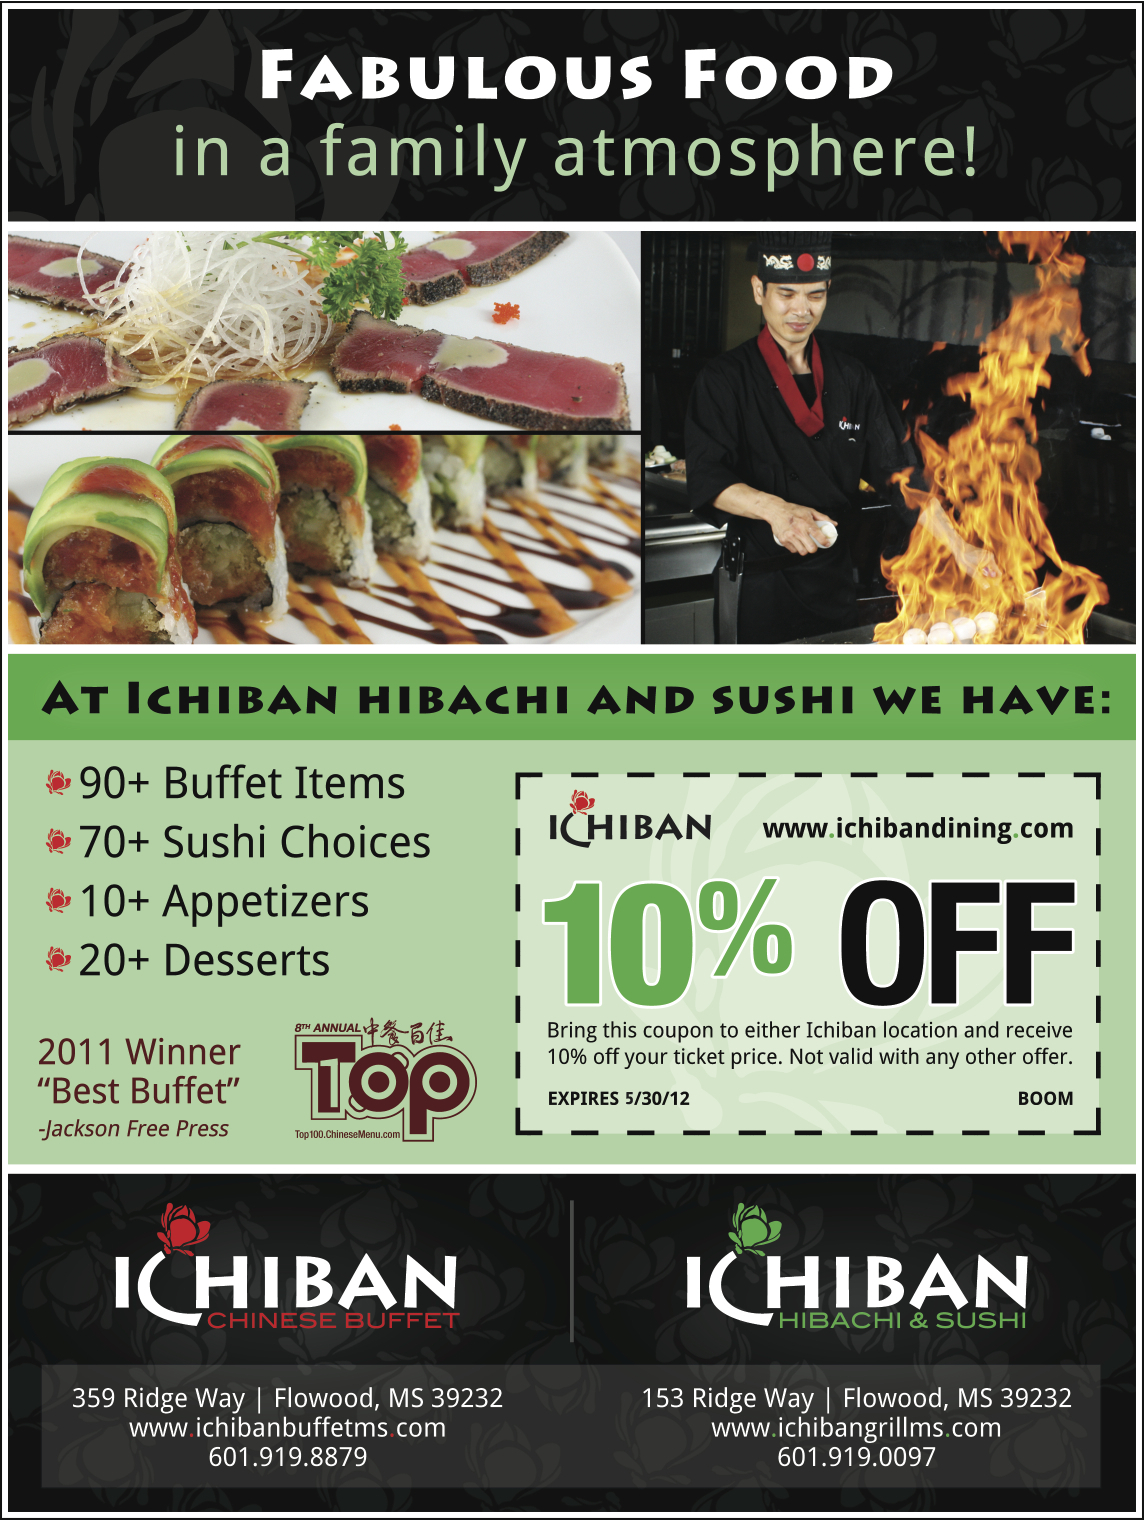 Theater Room Ideas Ichiban Hibachi & Sushi | Jackson Free Press | Jackson, Ms